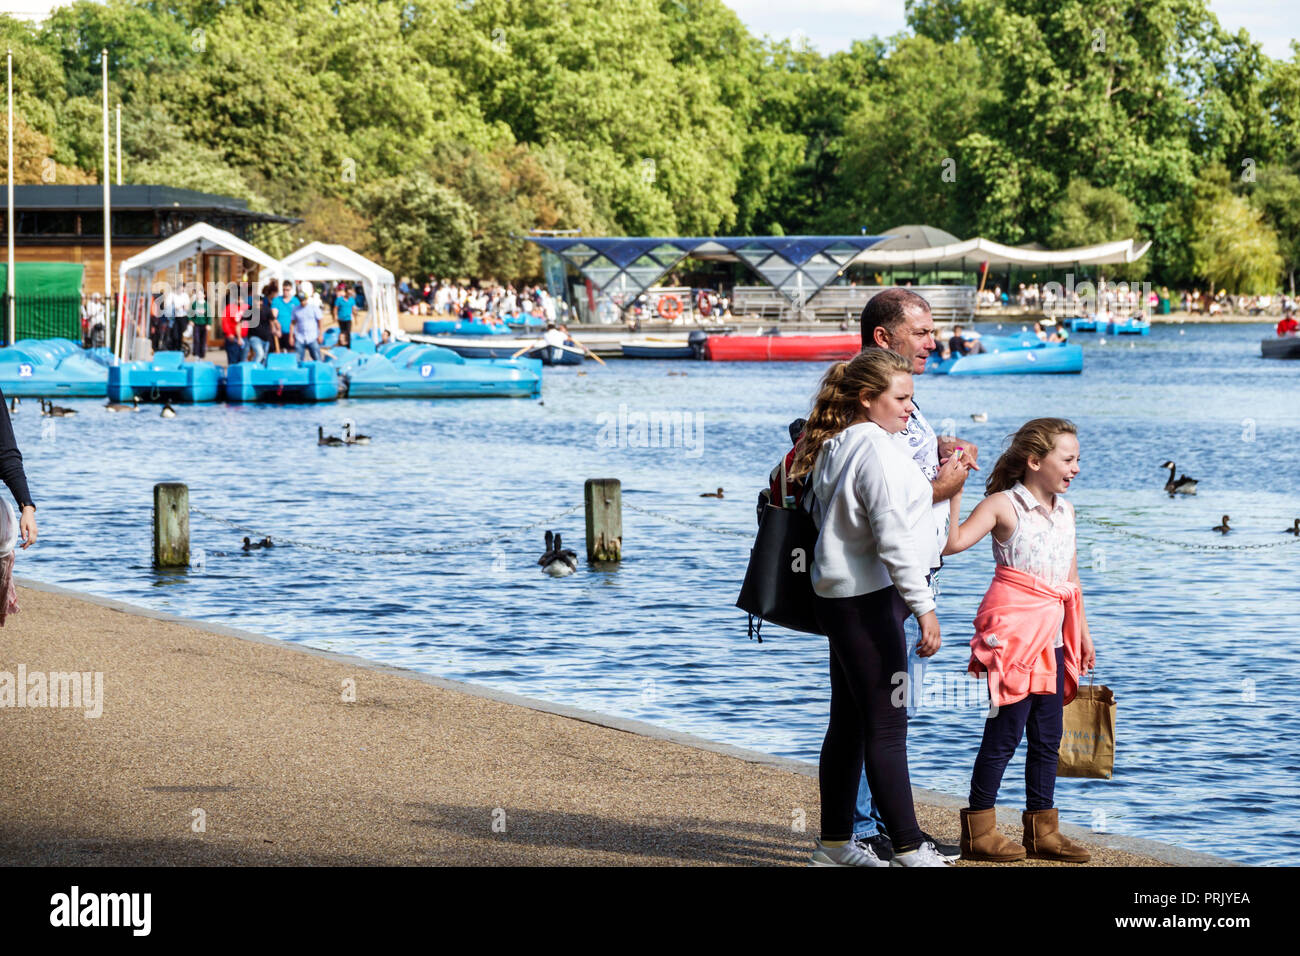 London England United Kingdom Great Britain Royal Parks Hyde Park park green space The Serpentine recreational lake man girl teen child family father - Stock Image